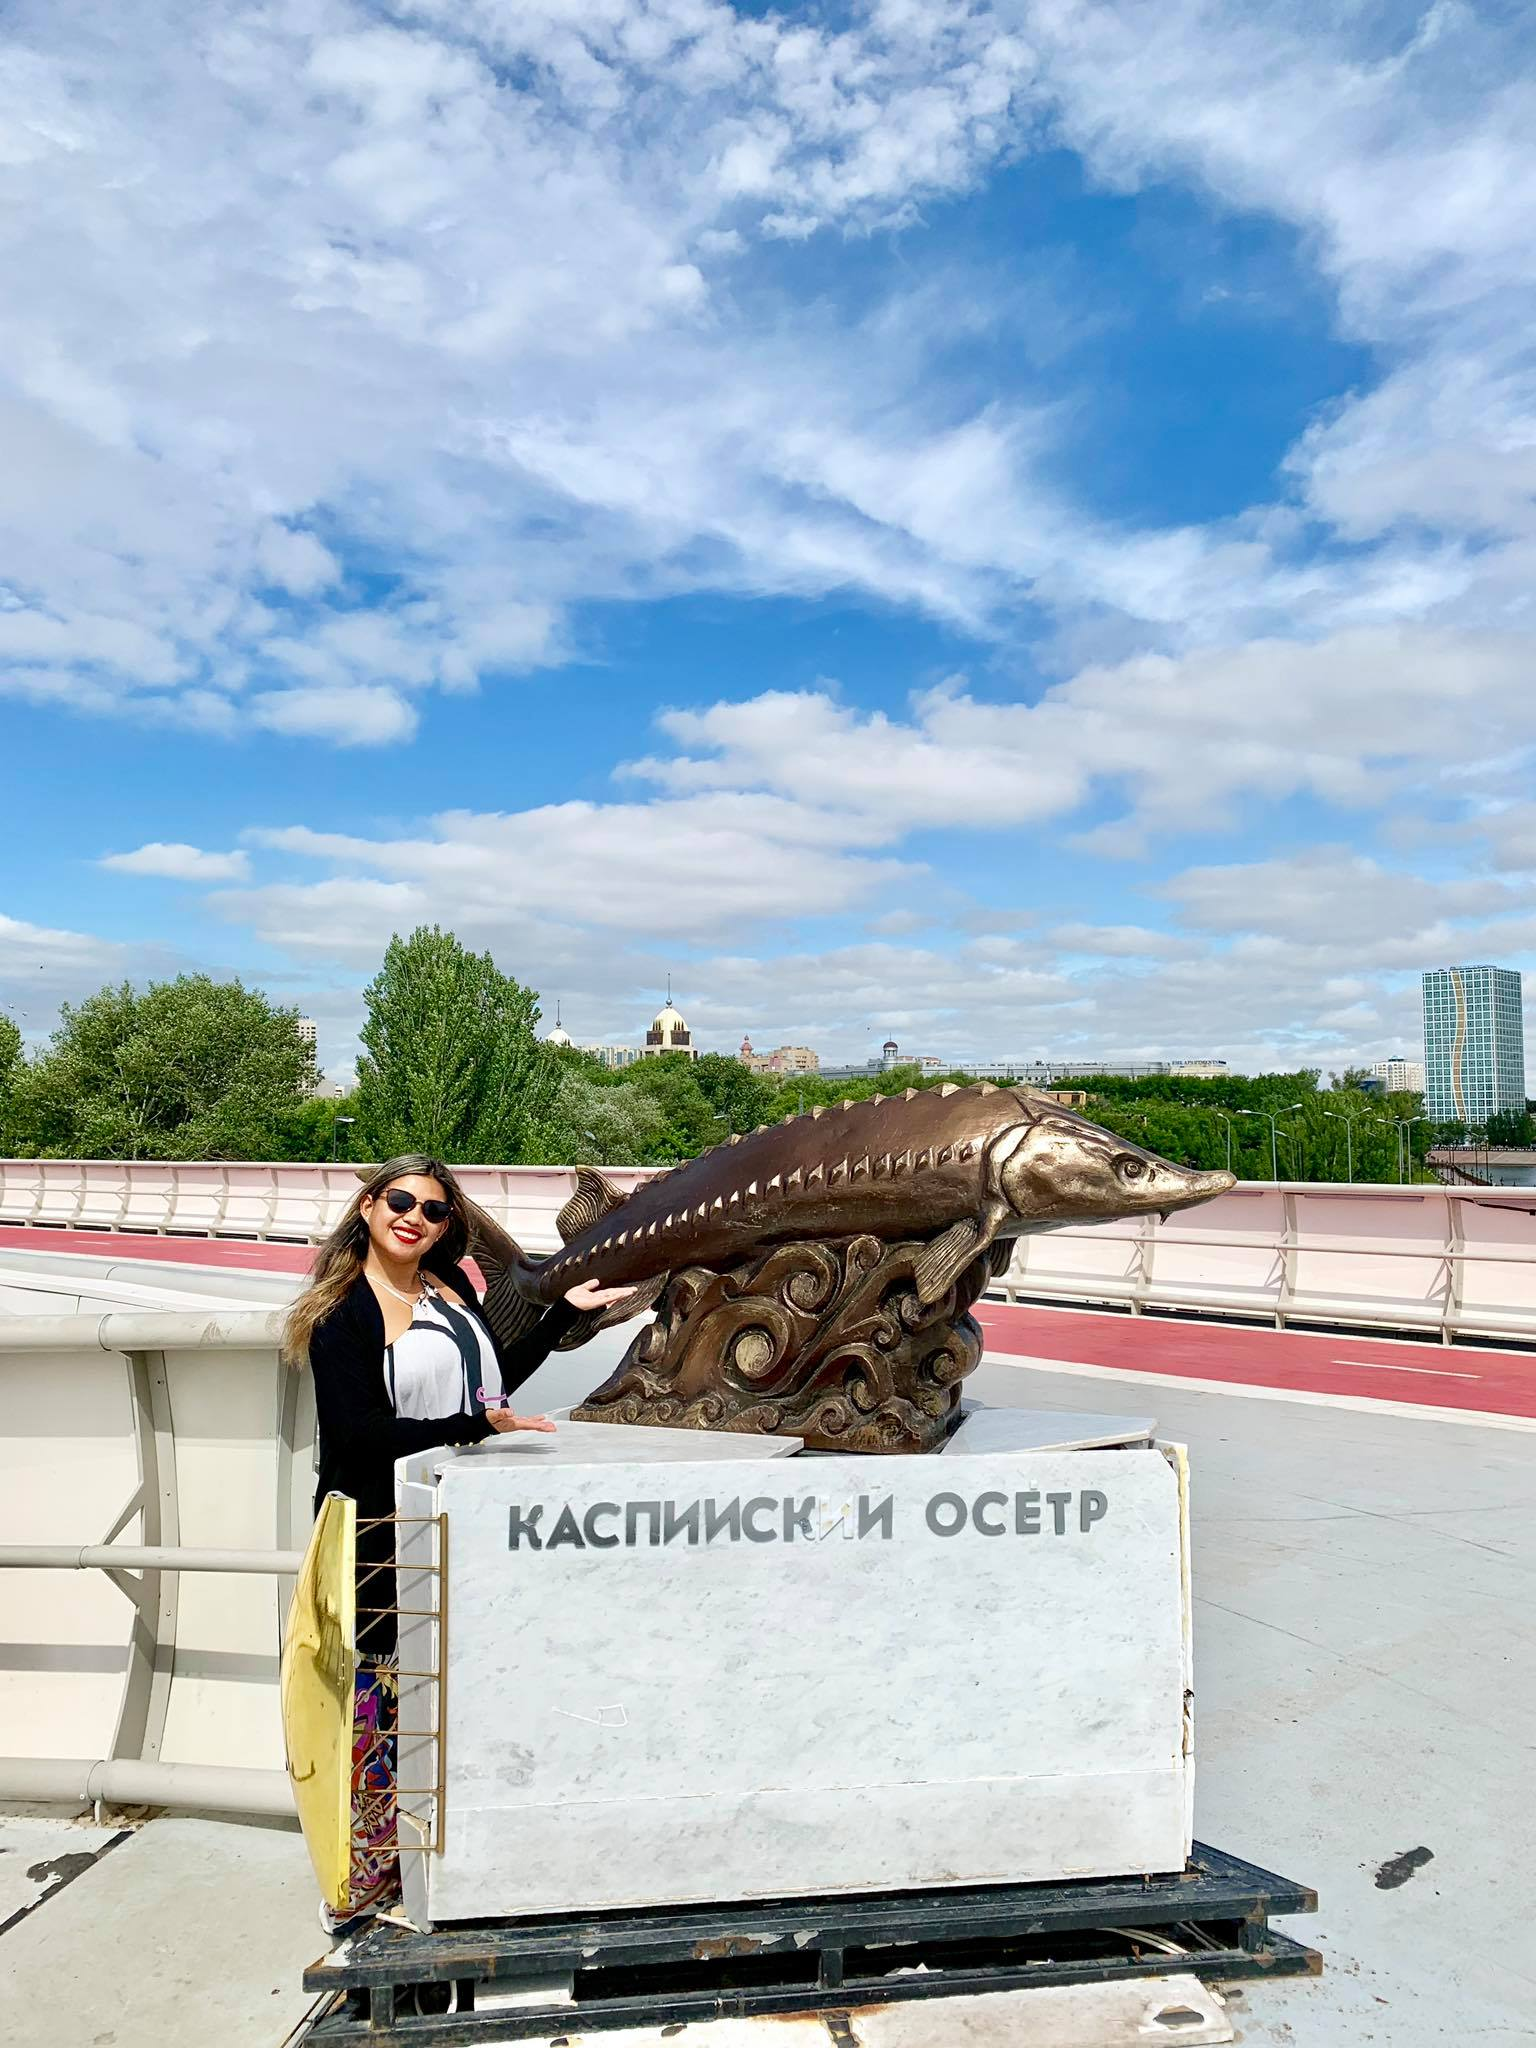 Kach Solo Travels in 2019 Nursultan  Astana - the City of the Future12.jpg